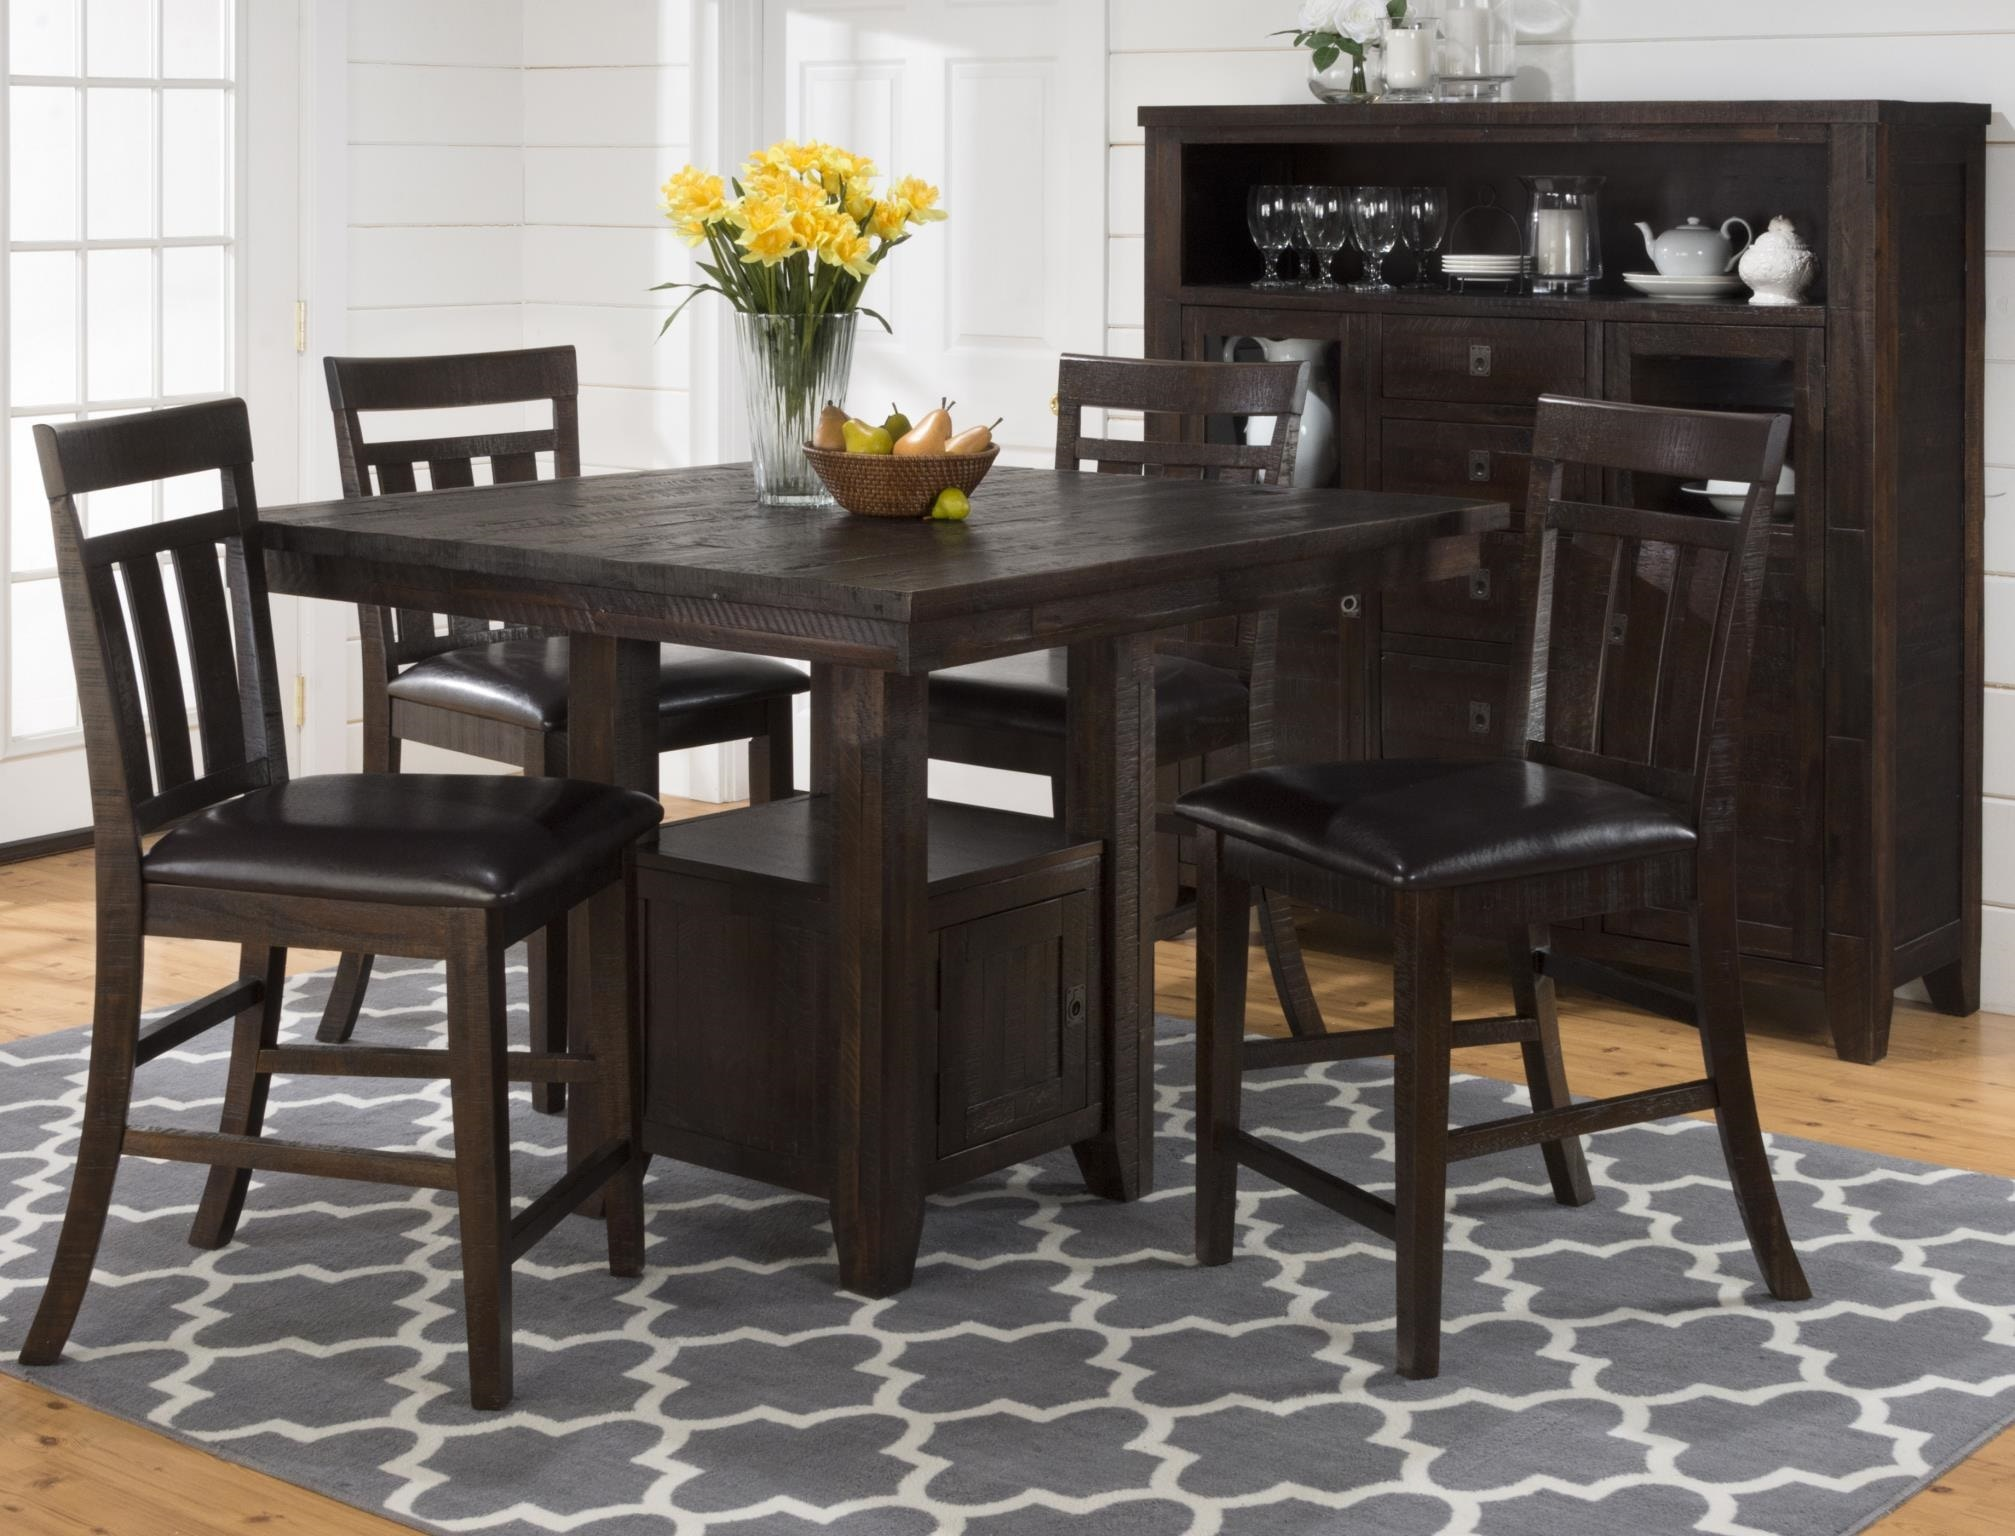 Jofran Counter Height Table U0026 Chairs 603029